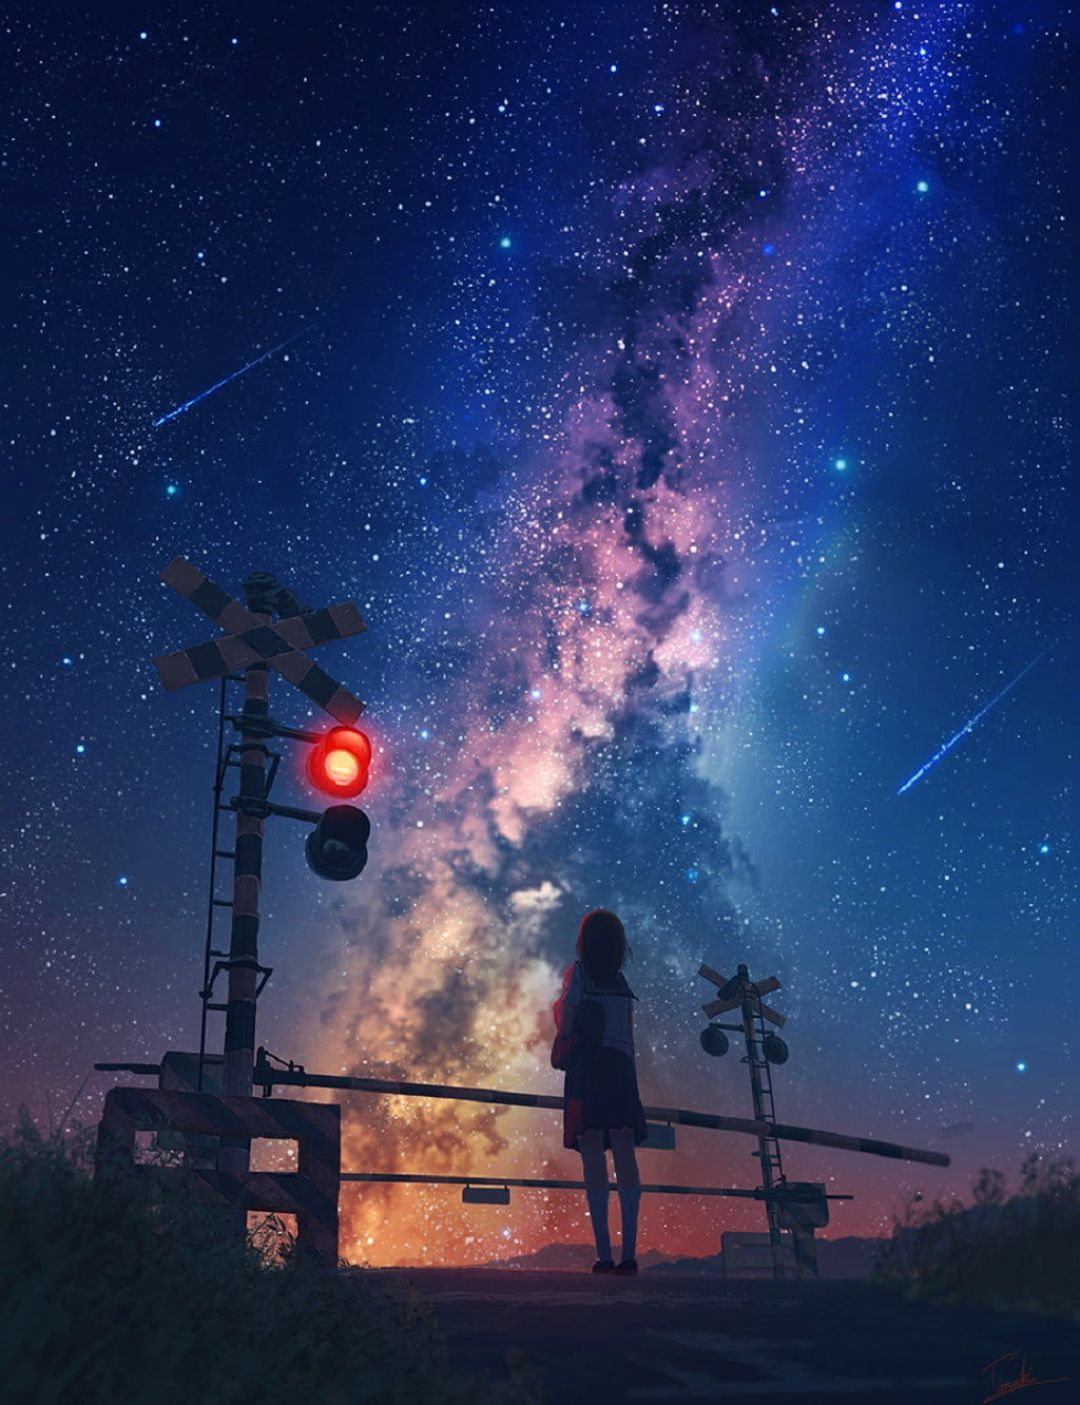 11360 Hd Wallpapers Images Hd Photos 1080p Wallpapers Android Iphone 2020 Anime Scenery Sky Anime Anime Galaxy